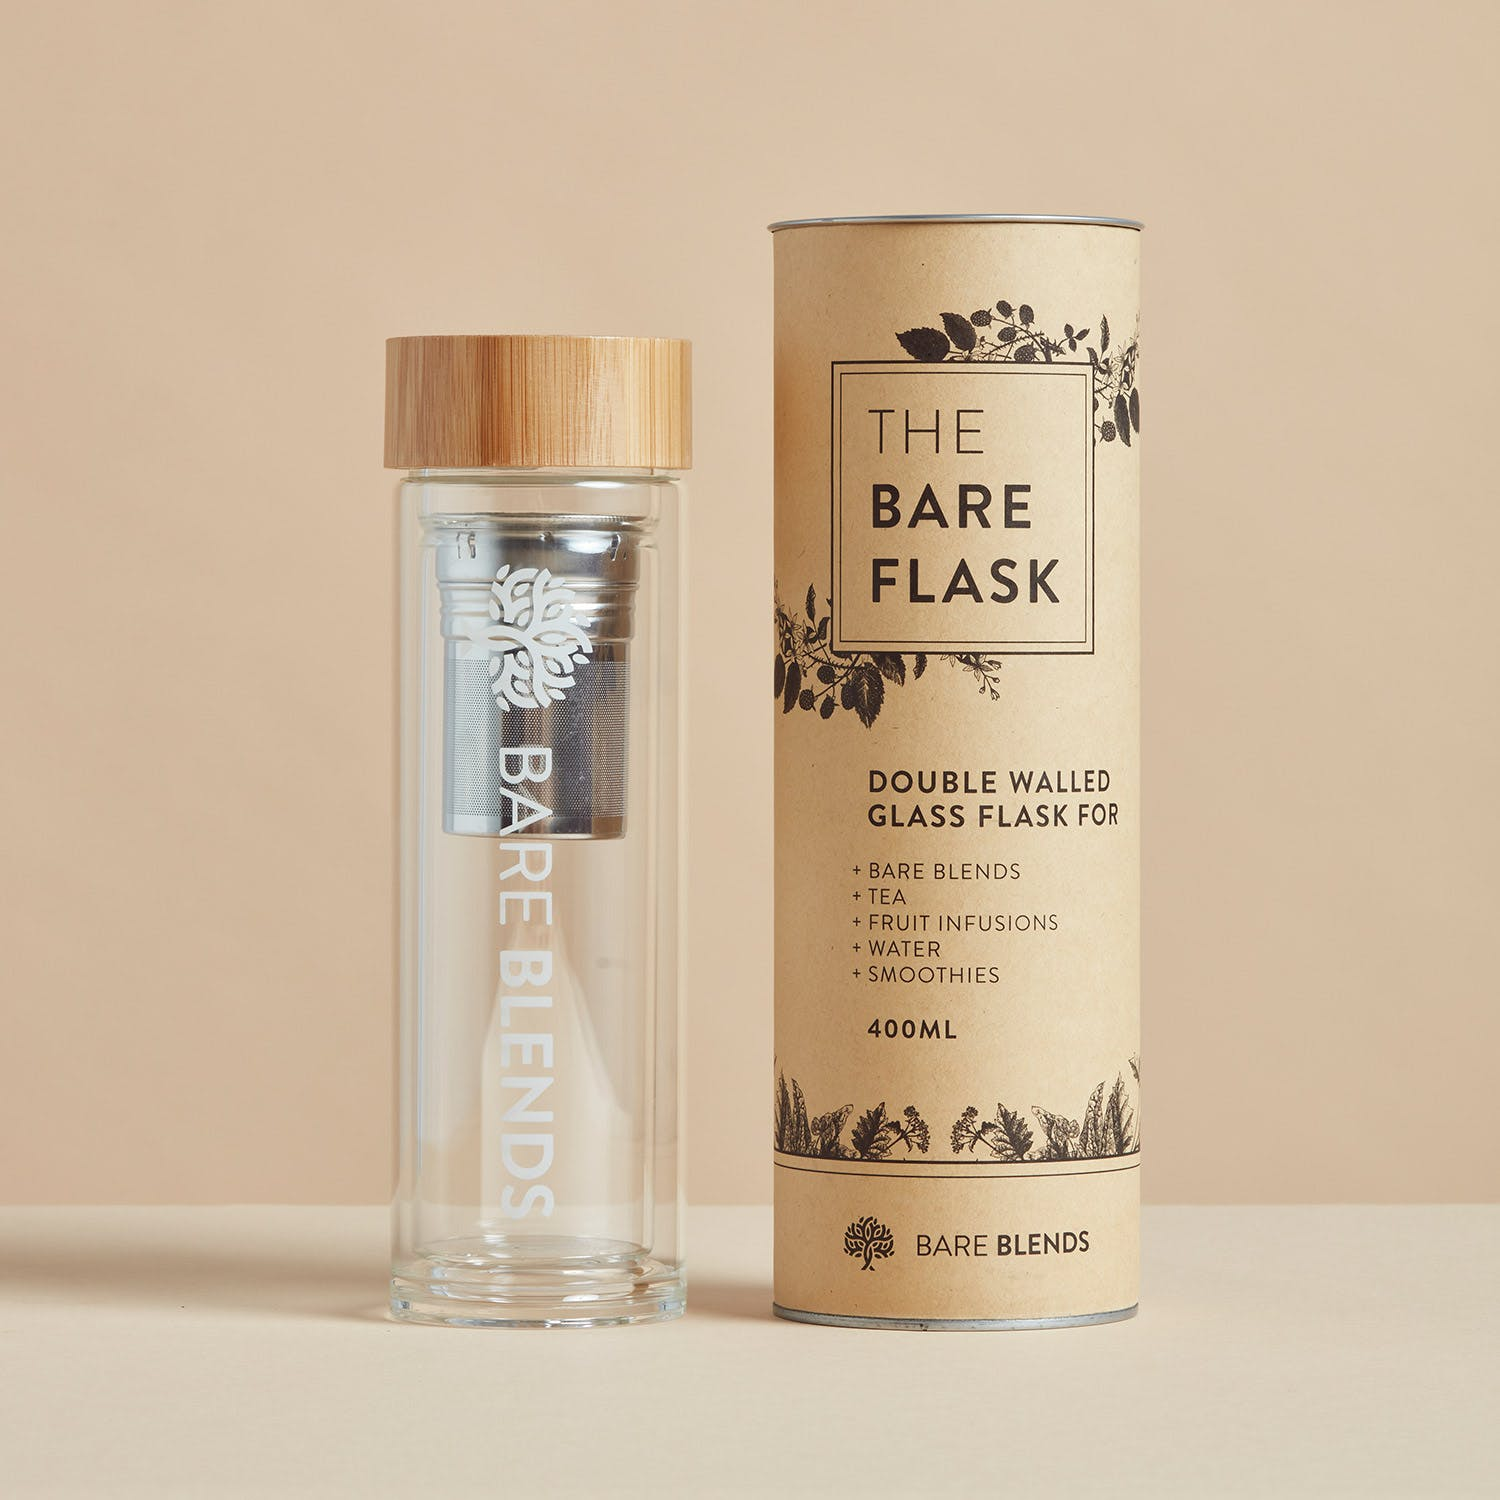 The Bare Flask - double-walled glass flask